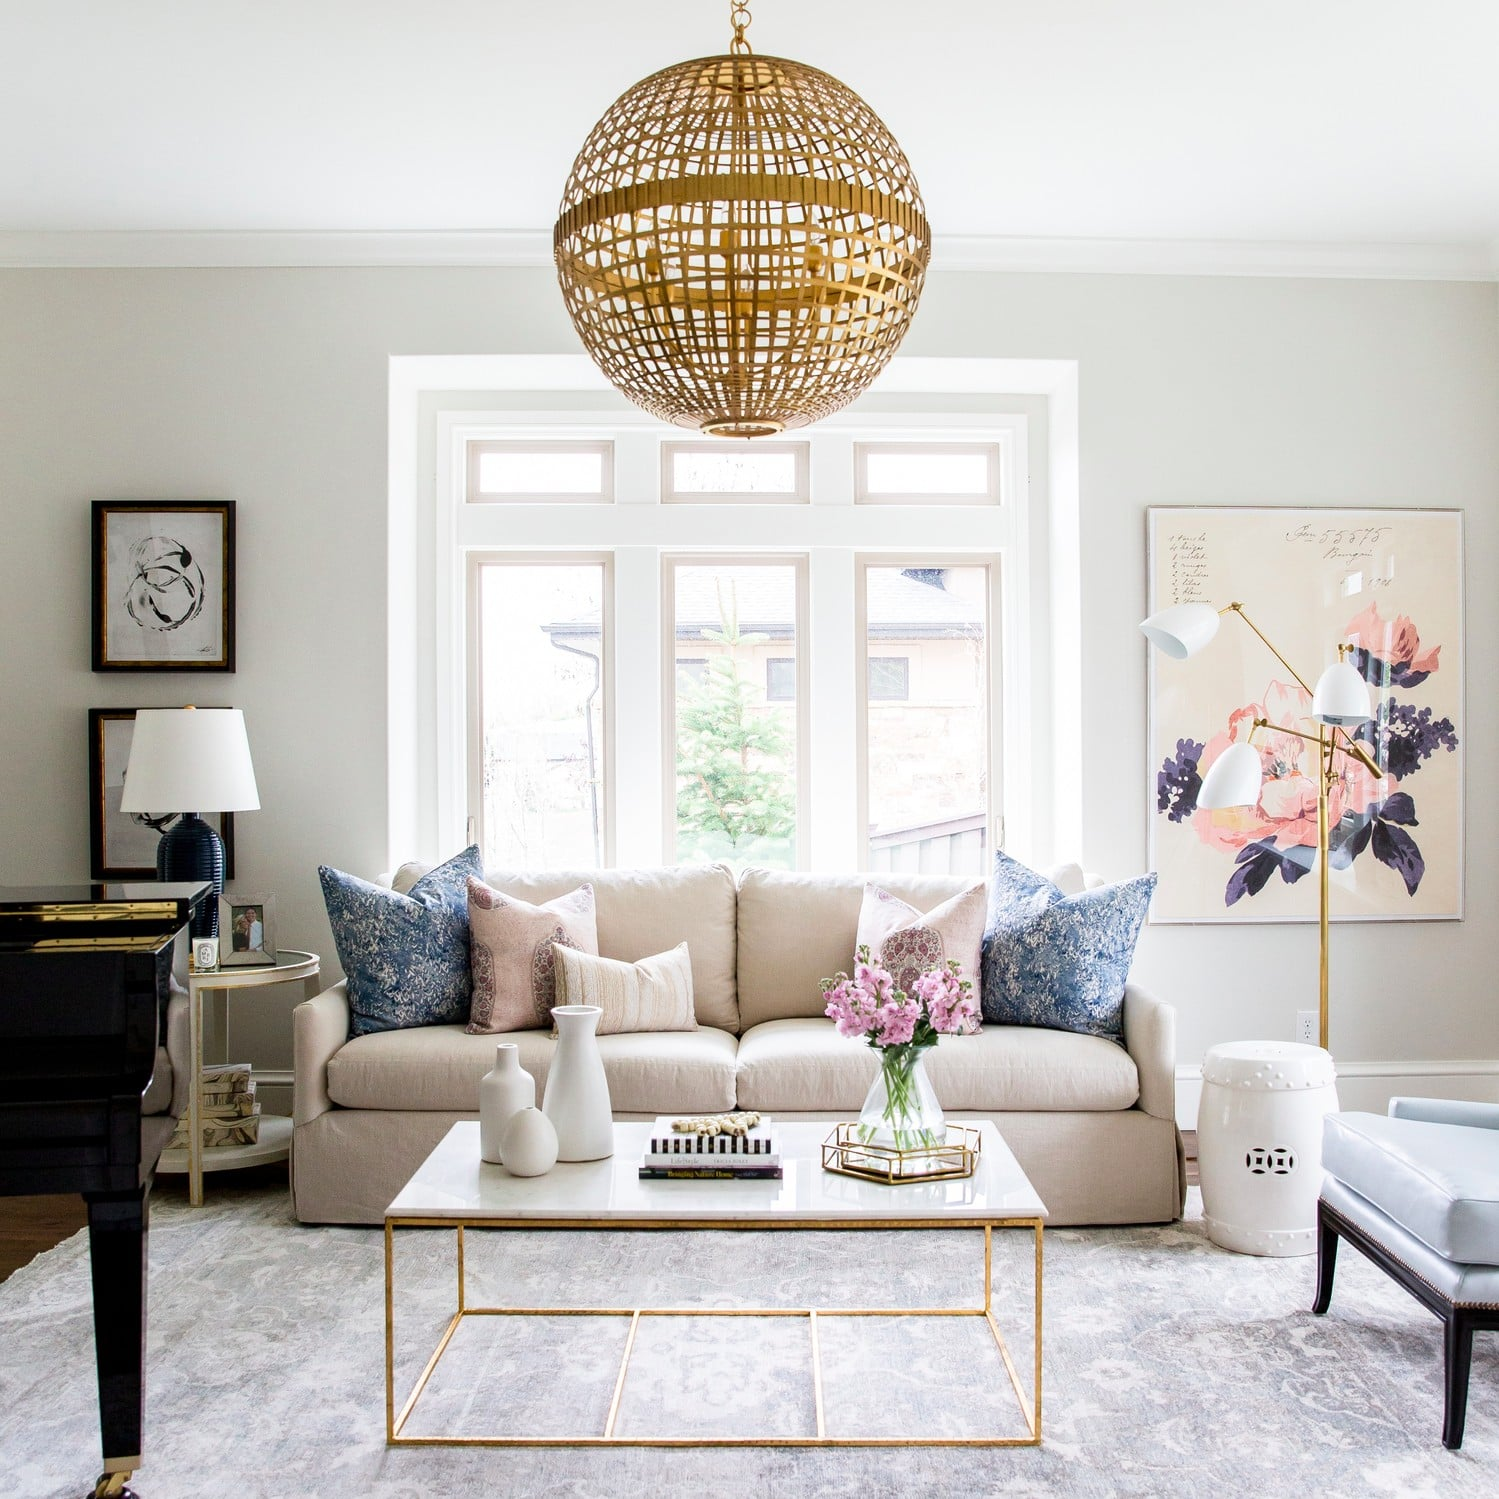 & First Apartment Decorating Ideas | POPSUGAR Home